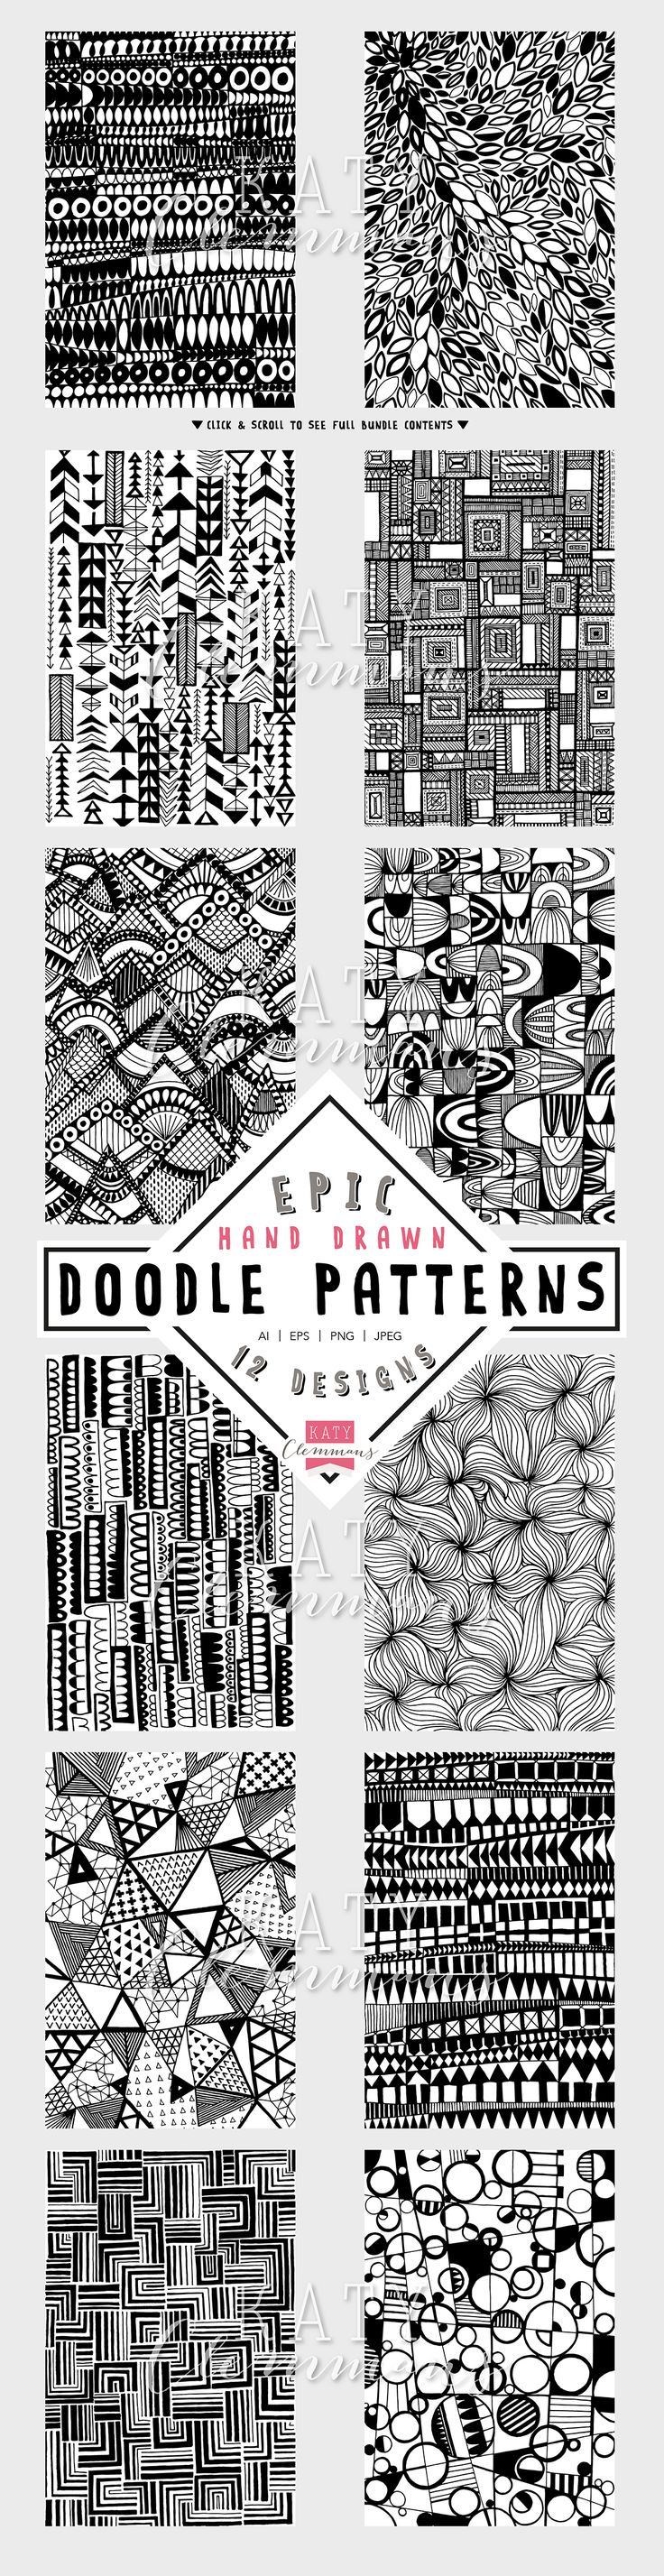 Epic Hand Drawn Doodle Patterns by Katy Clemmans on Creative Market                                                                                                                                                                                 More